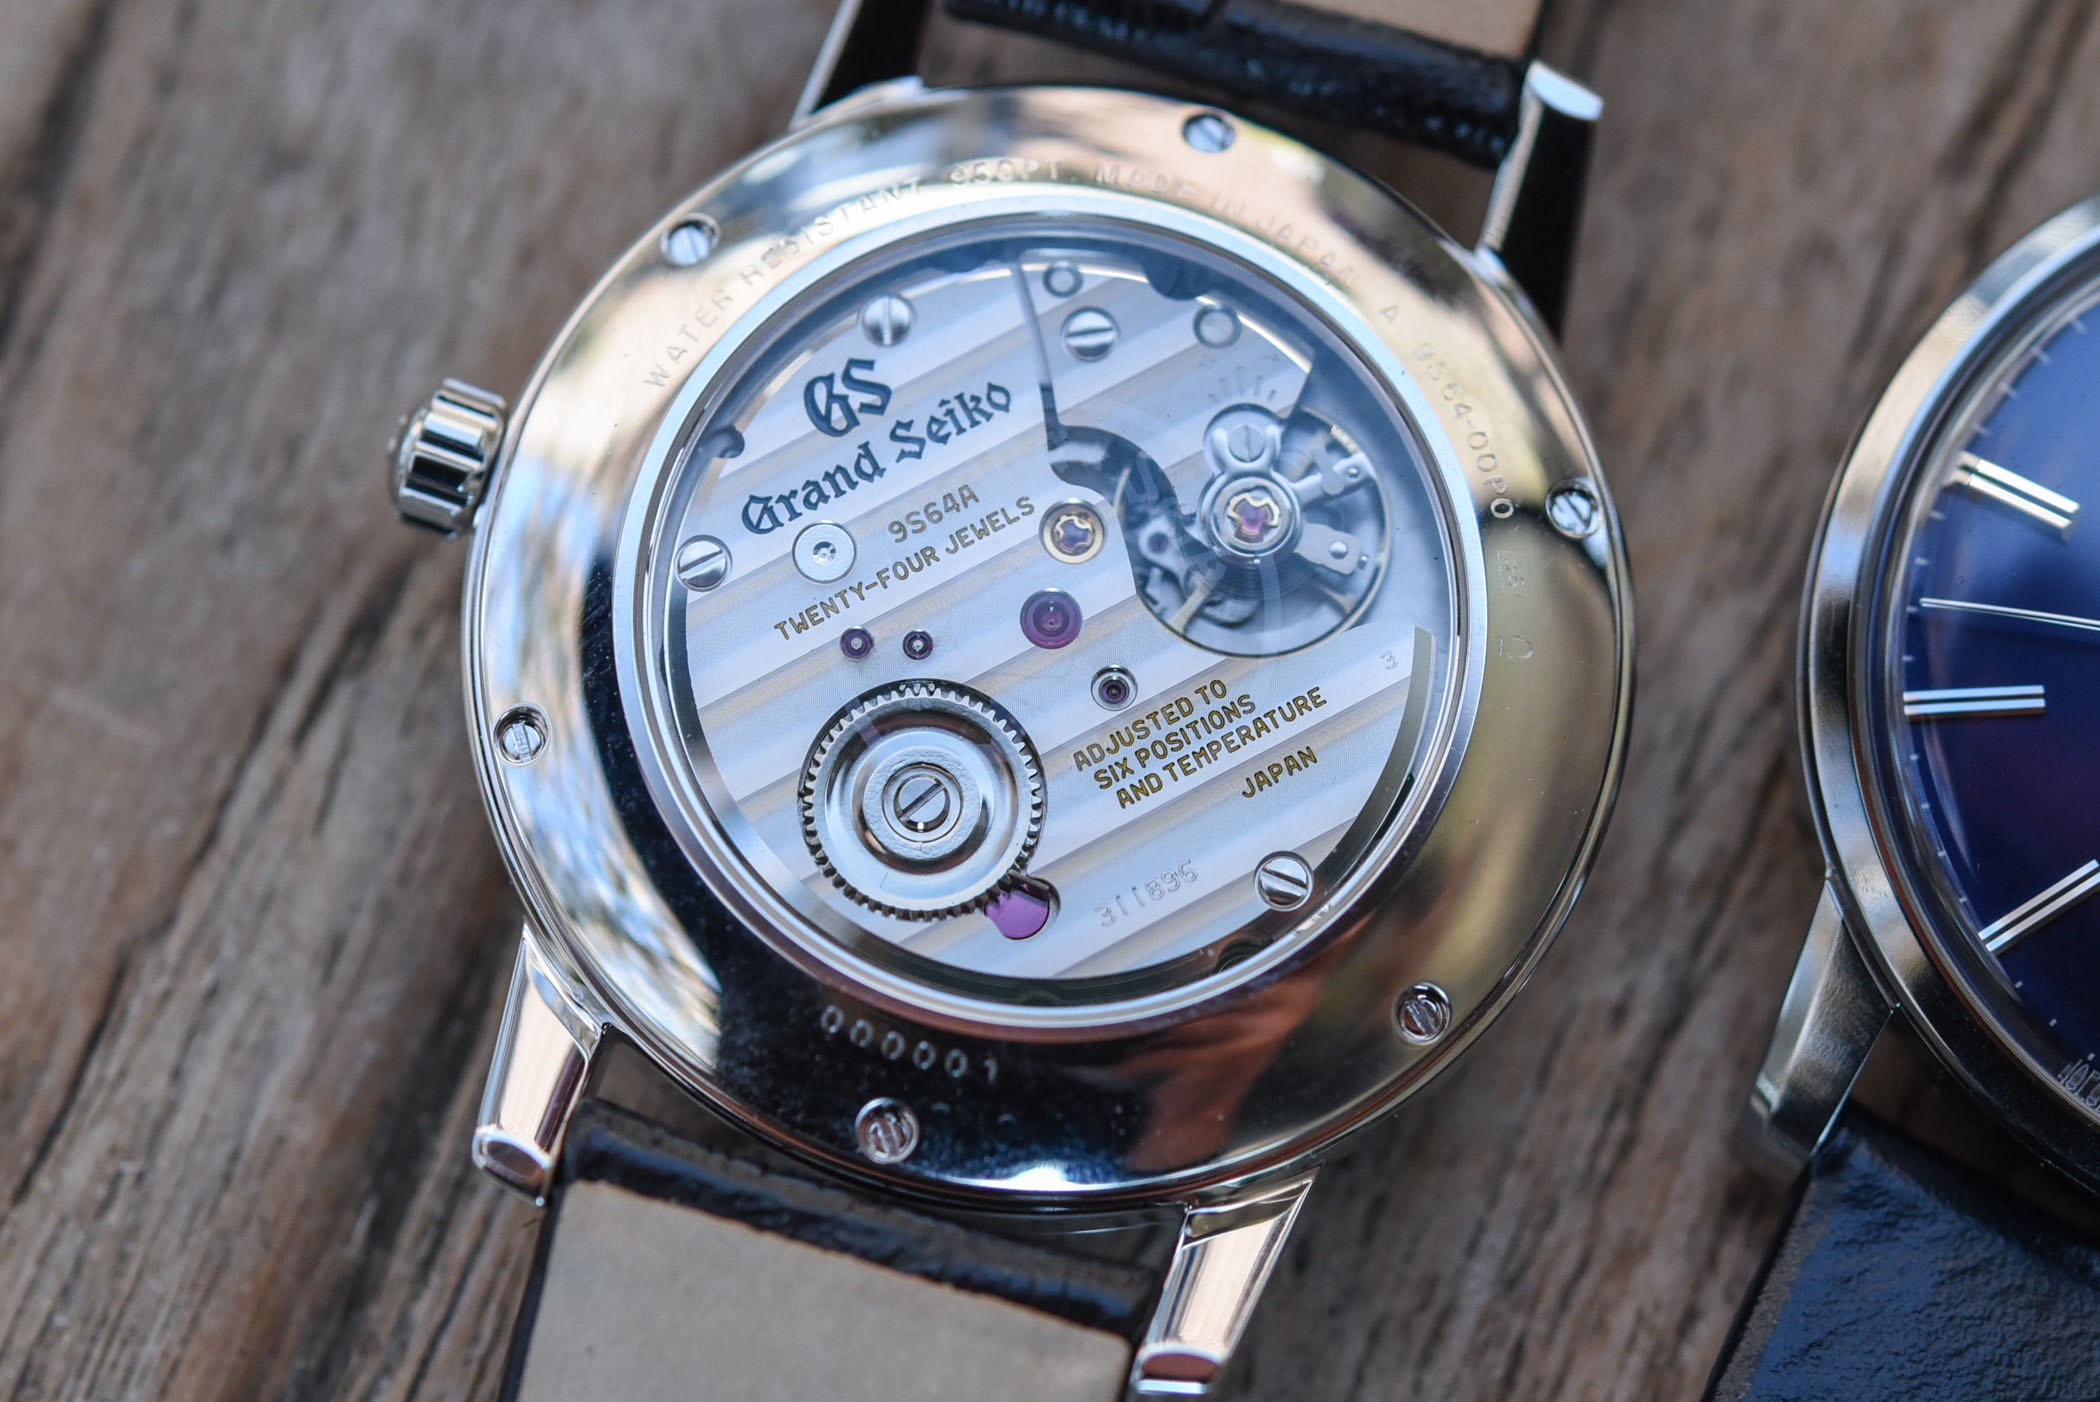 Calibre 9S64 - Grand Seiko 60th Anniversary Collection - First Grand Seiko Re-Creation 1960 SBGW257 SBGW259